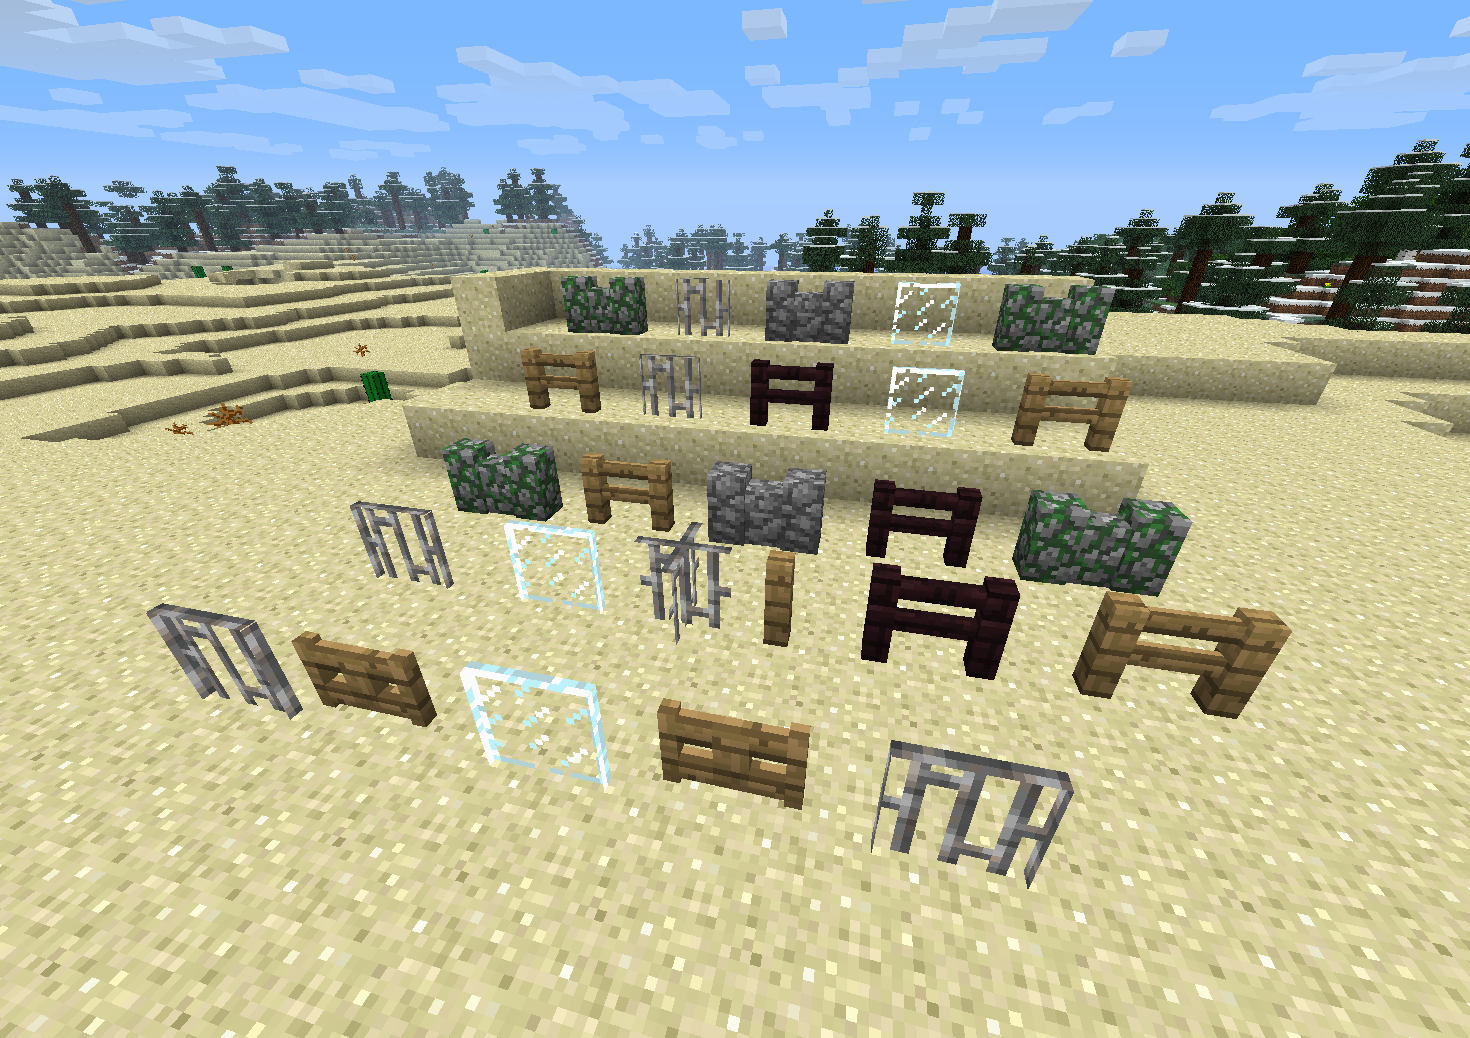 Minecraft fence Custom Borkedfencespng Jira Mojang Mc2938 Different Types Of Fences And Walls Dont Connect Jira